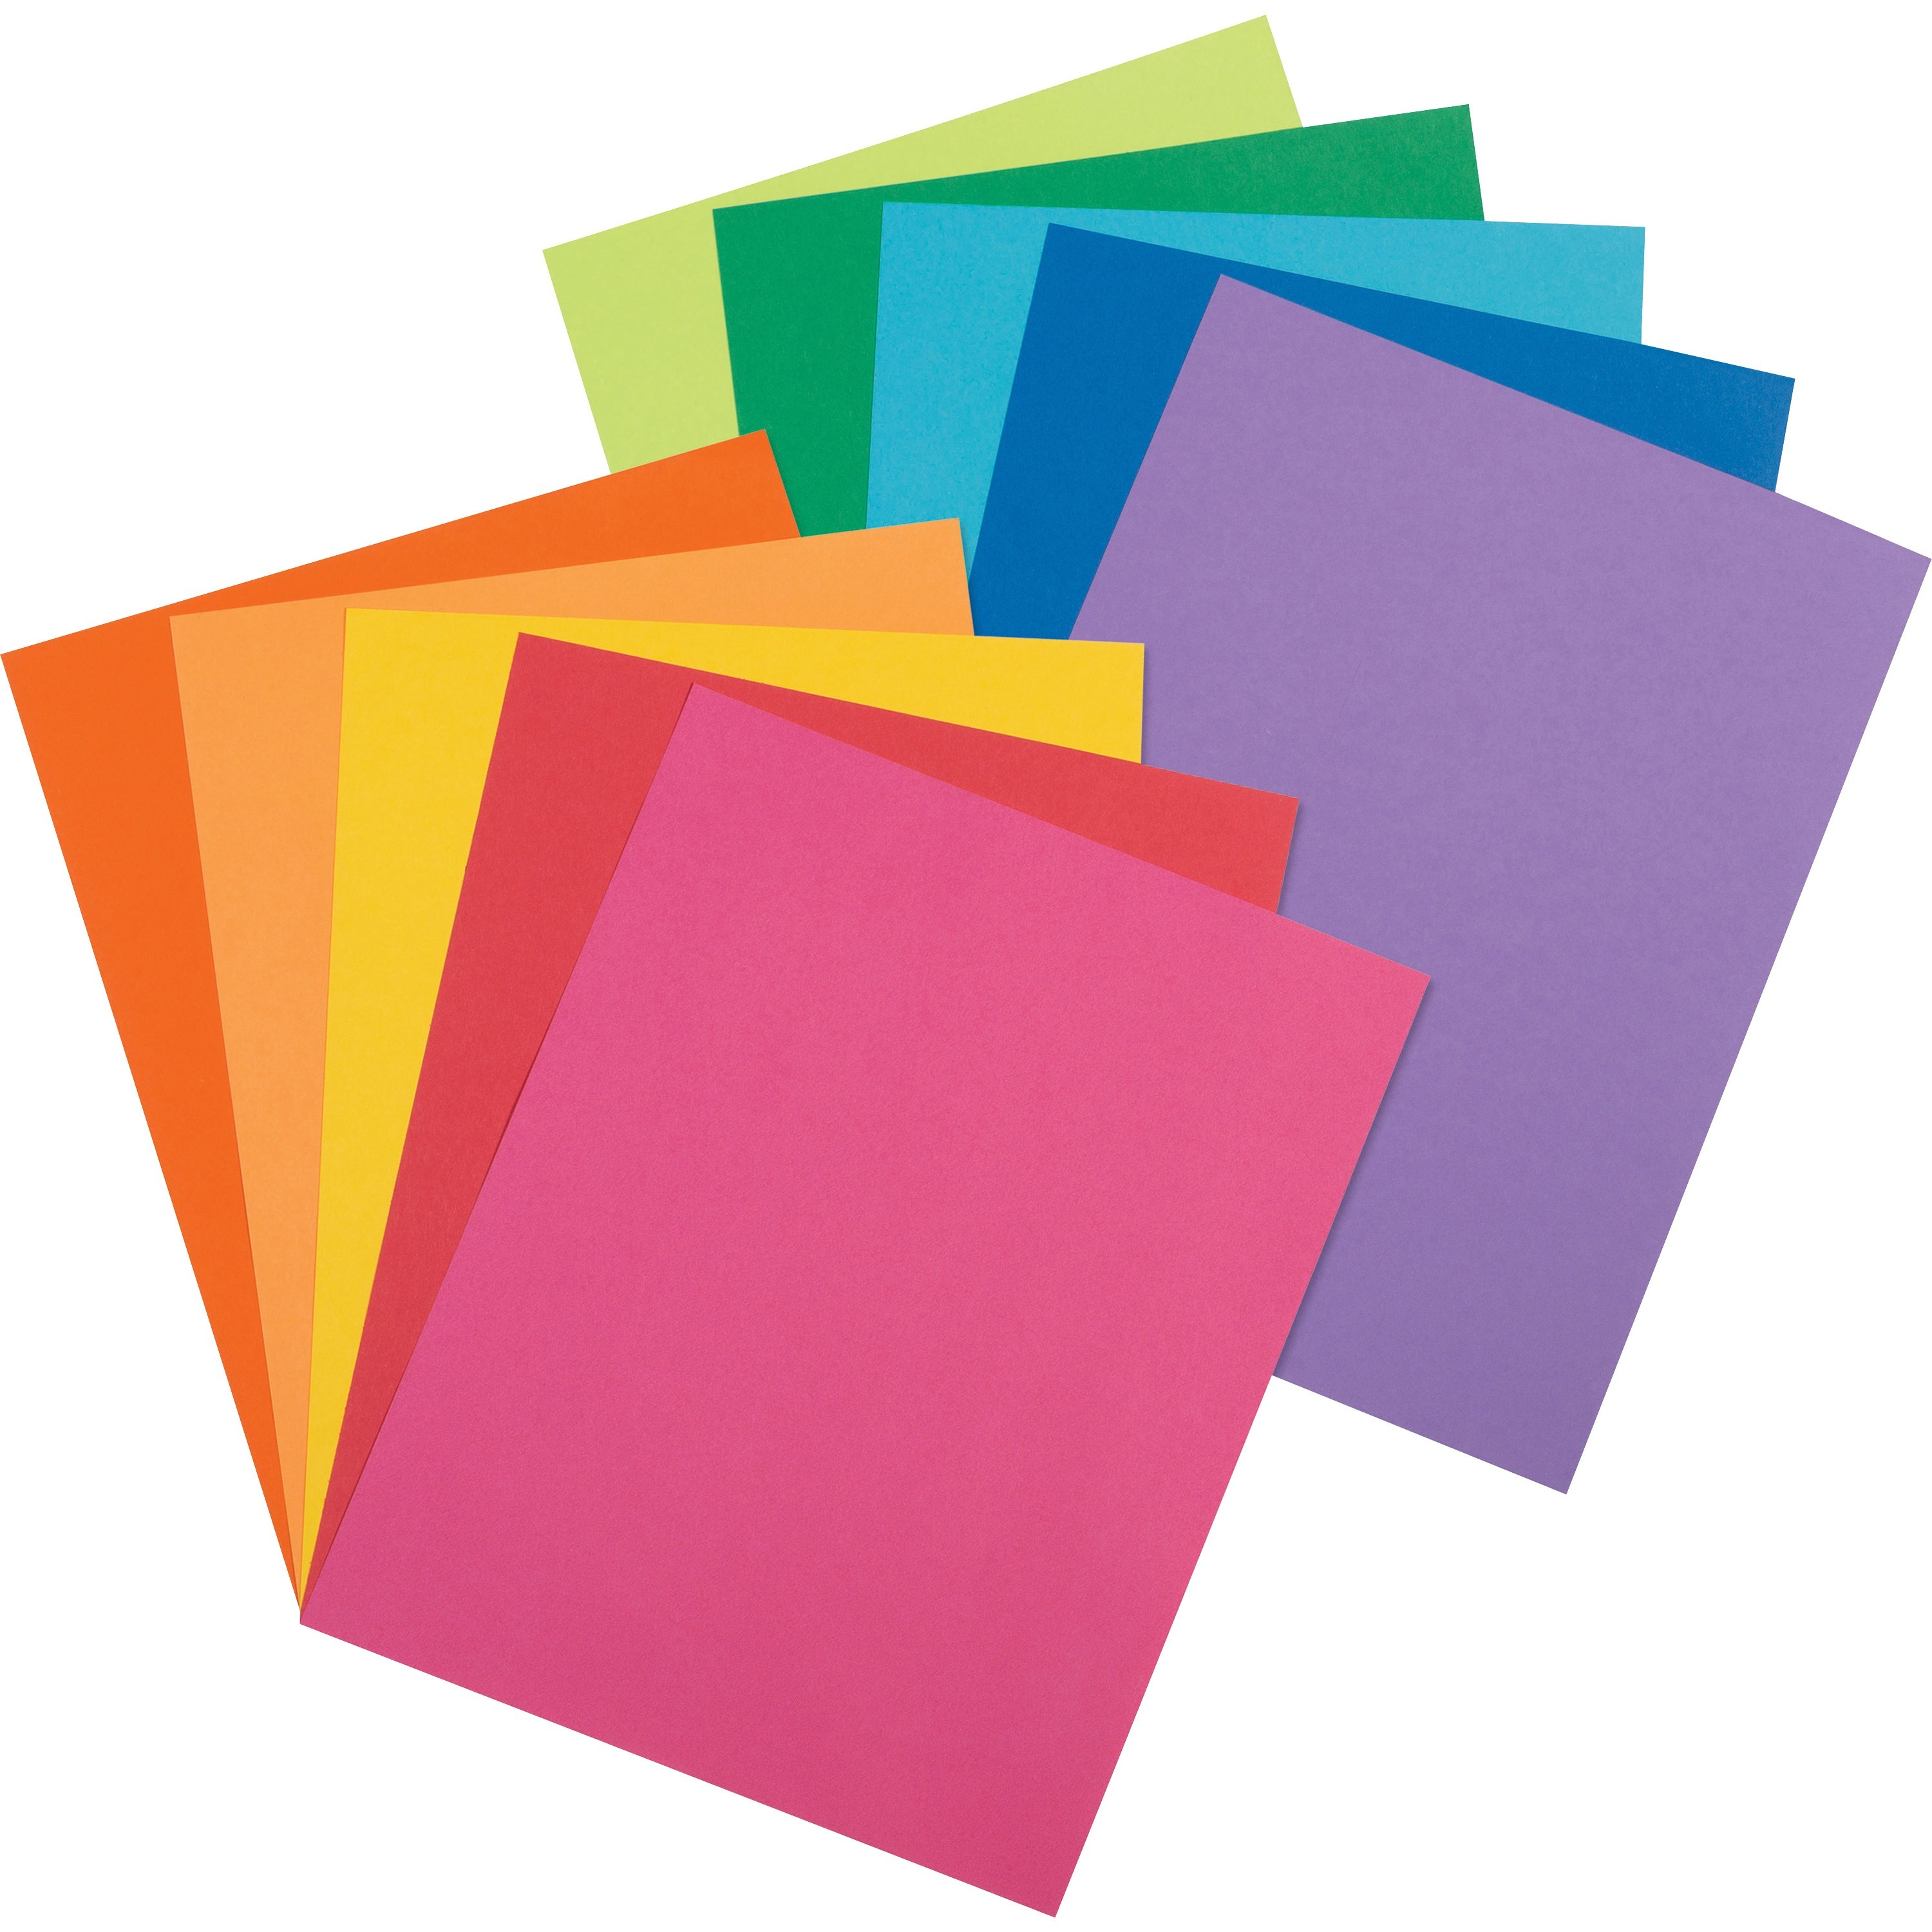 image about Printable Card Stock titled PAC101199